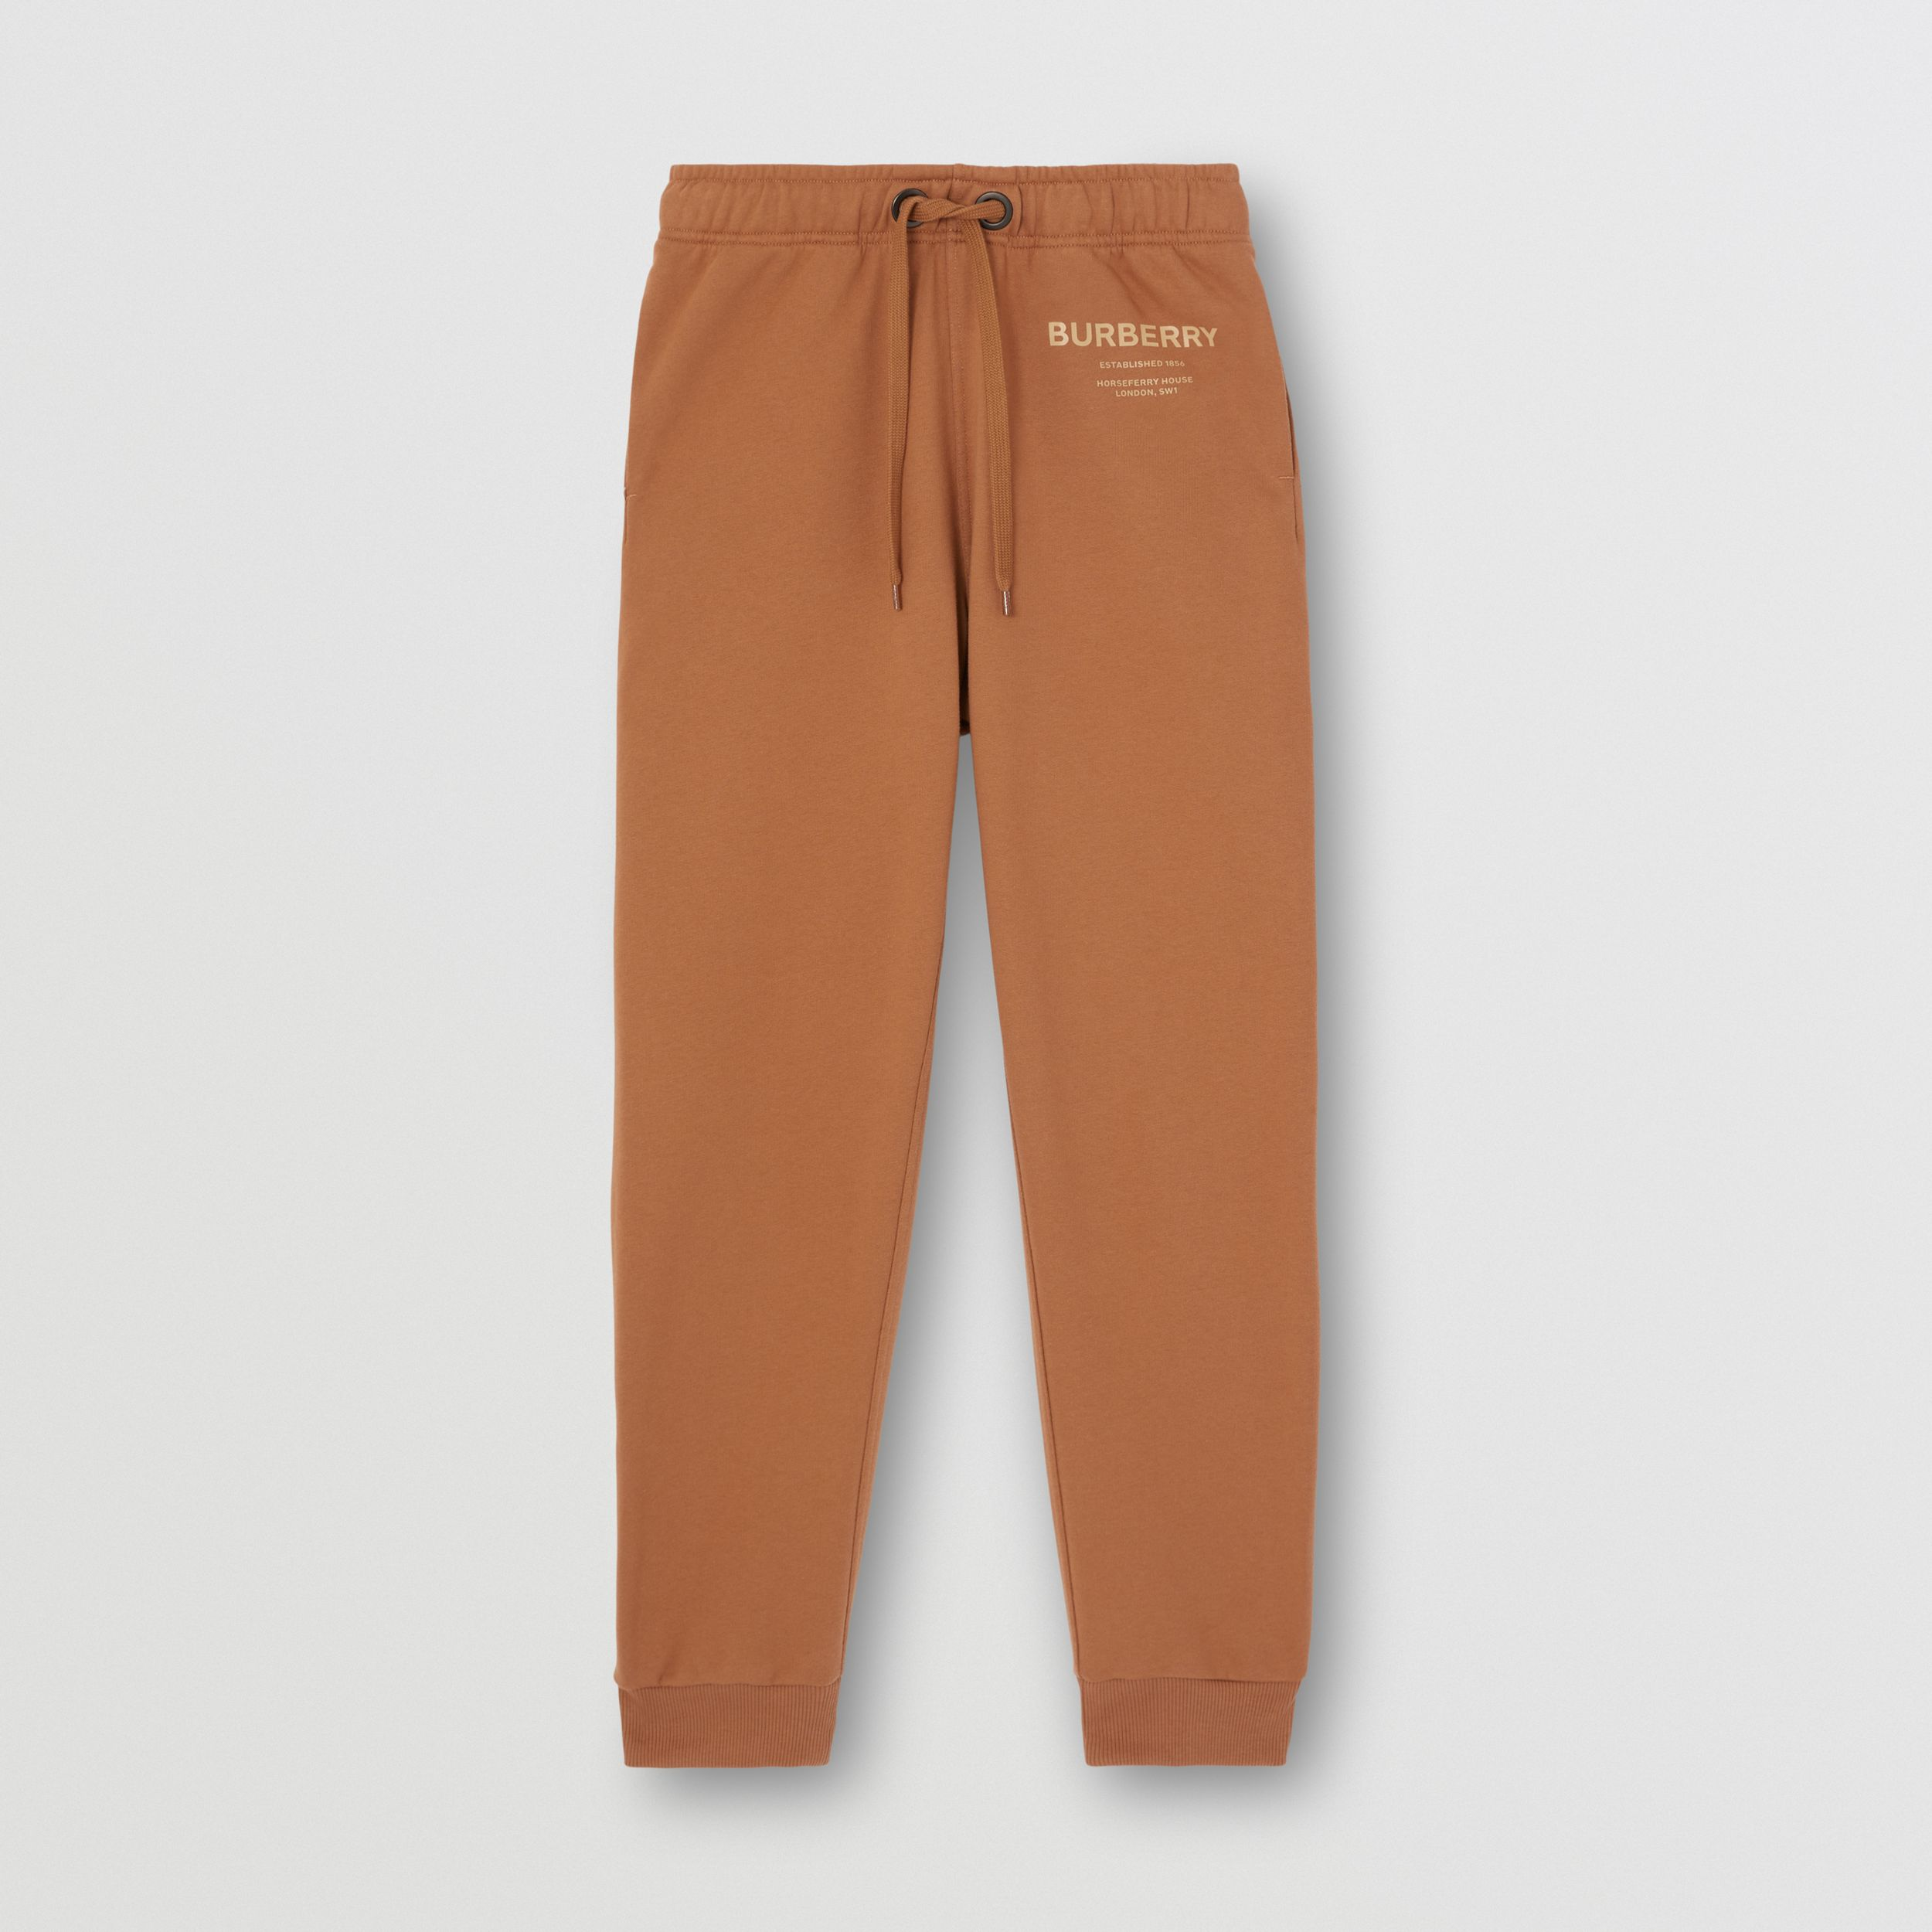 Horseferry Print Cotton Jogging Pants in Camel - Women | Burberry - 4